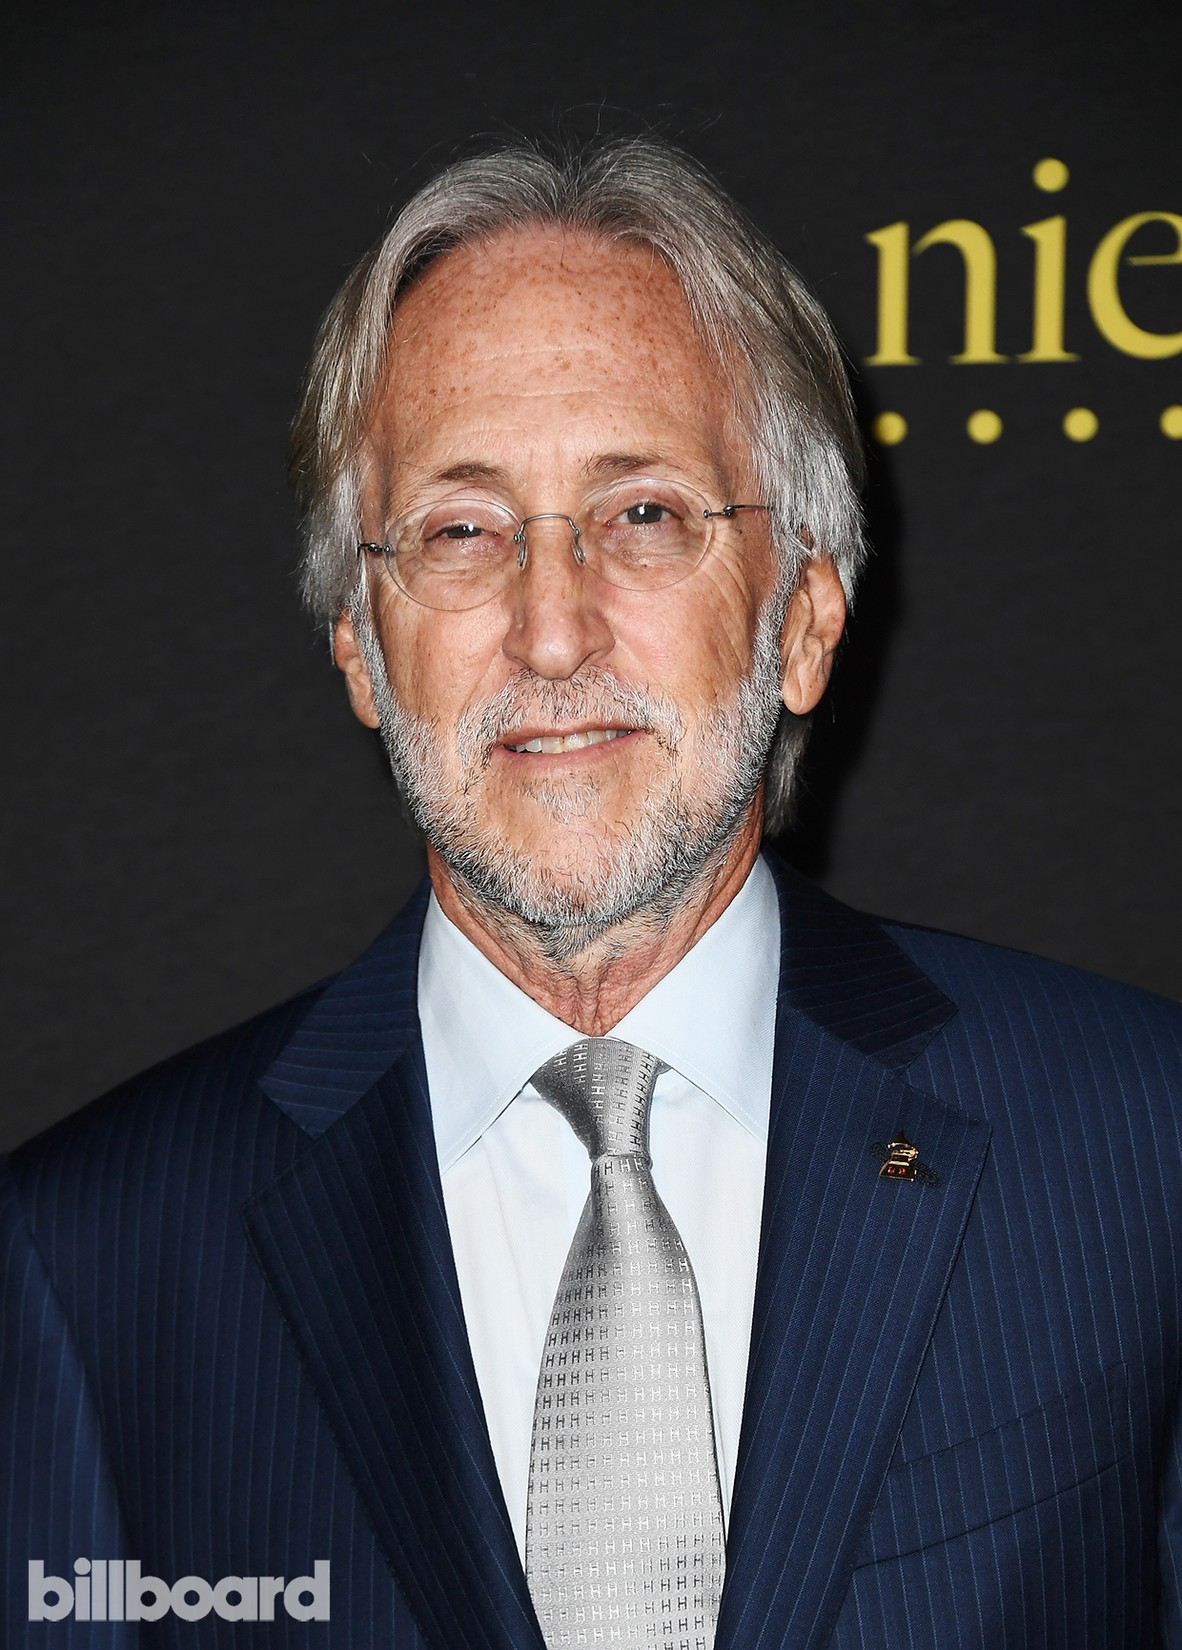 Record producer Neil Portnow attends Billboard Power 100 - Red Carpet at Cecconi's on Feb. 9, 2017 in West Hollywood, Calif.